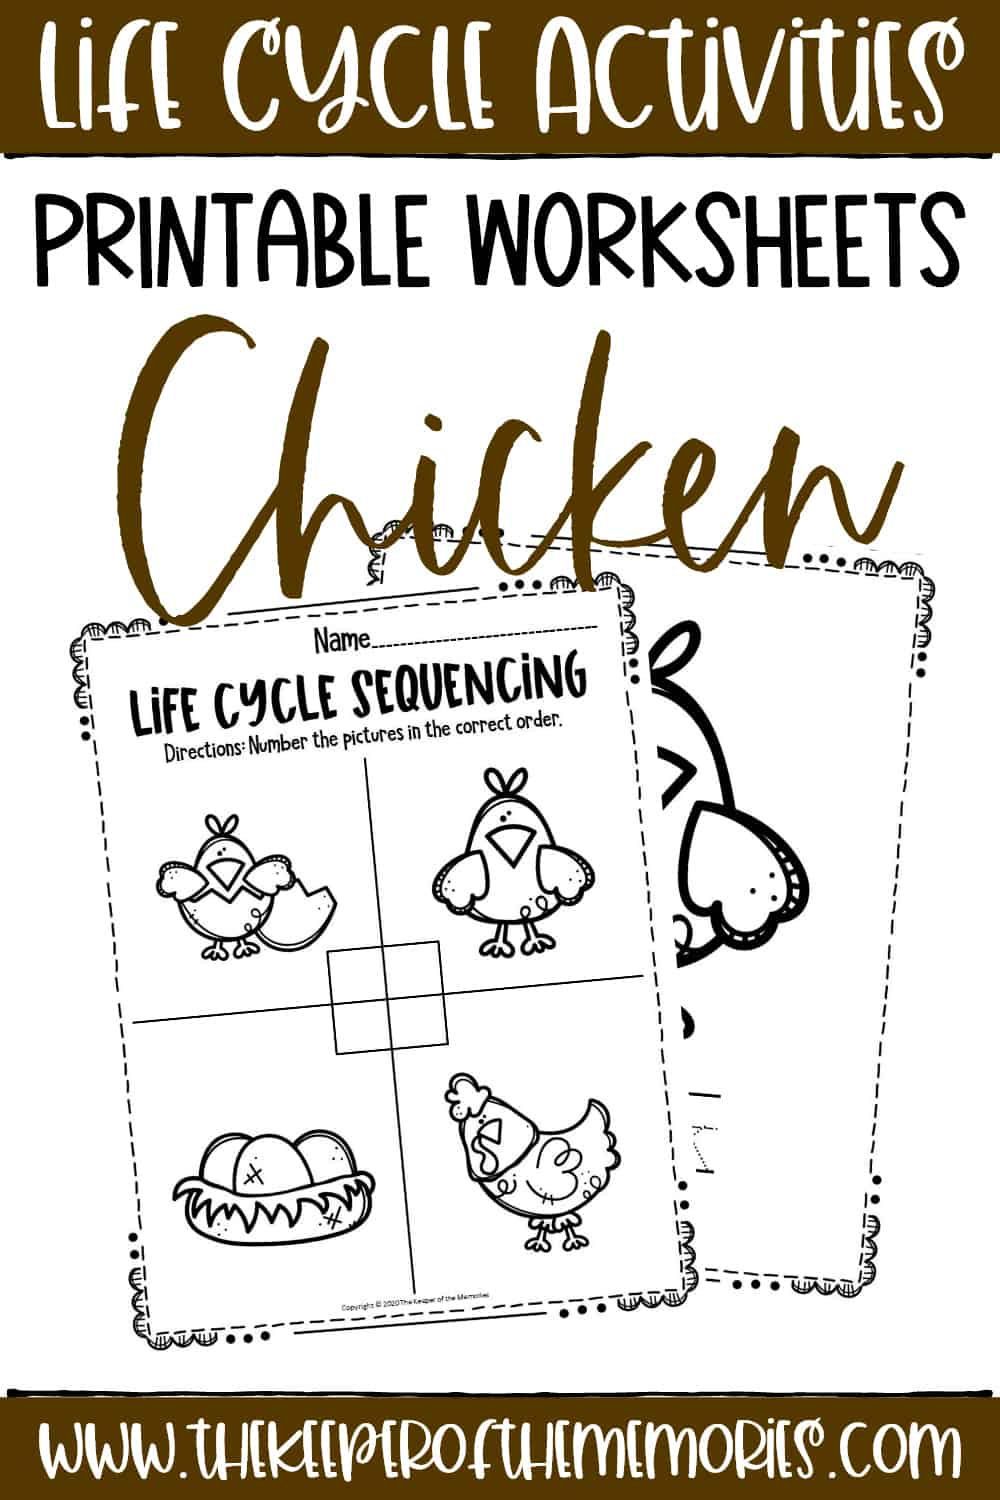 Free Printable Chicken Life Cycle Worksheets